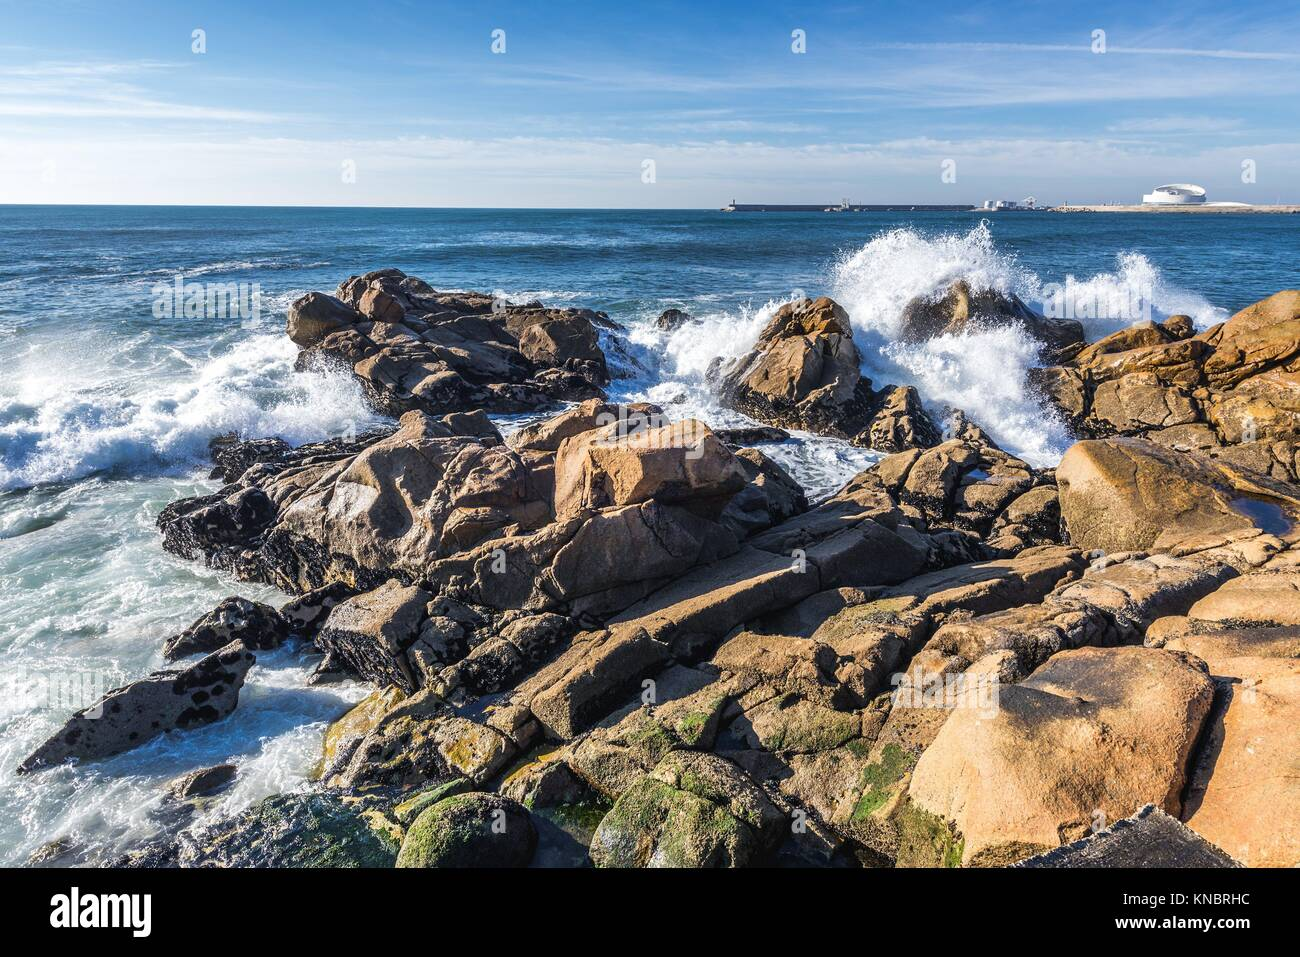 Rocks on the beach in Nevogilde civil parish of Porto, Portugal. Port of Leixoes Cruise Terminal building on background. Stock Photo